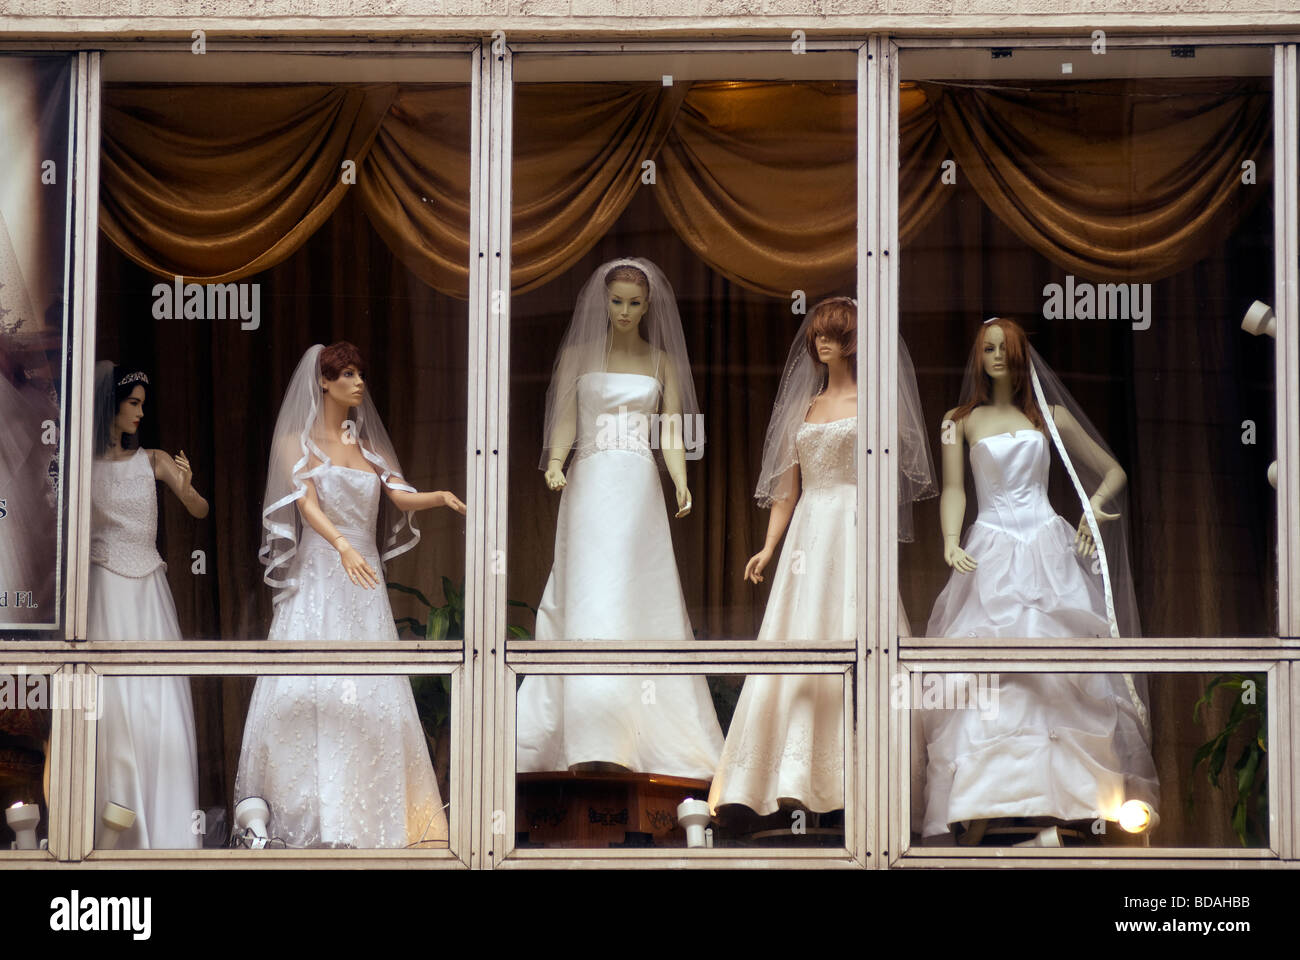 Mannequins displaying wedding dresses in the window of a retailer in ...